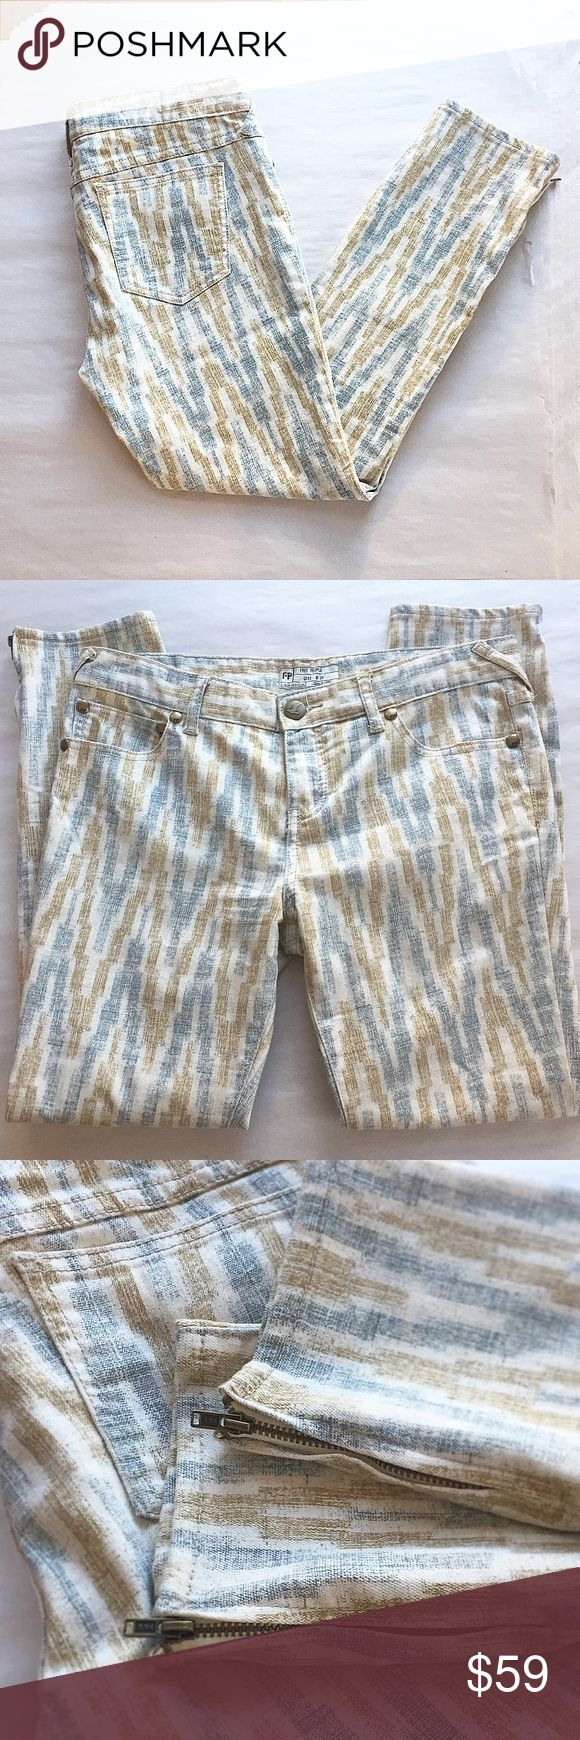 Free People Aztec print skinny jeans These bodacious jeans are the best! Only worn twice, in perfect condition! Zipper ankle detail. Regular rise. Size 8 (29). Free People Pants Skinny